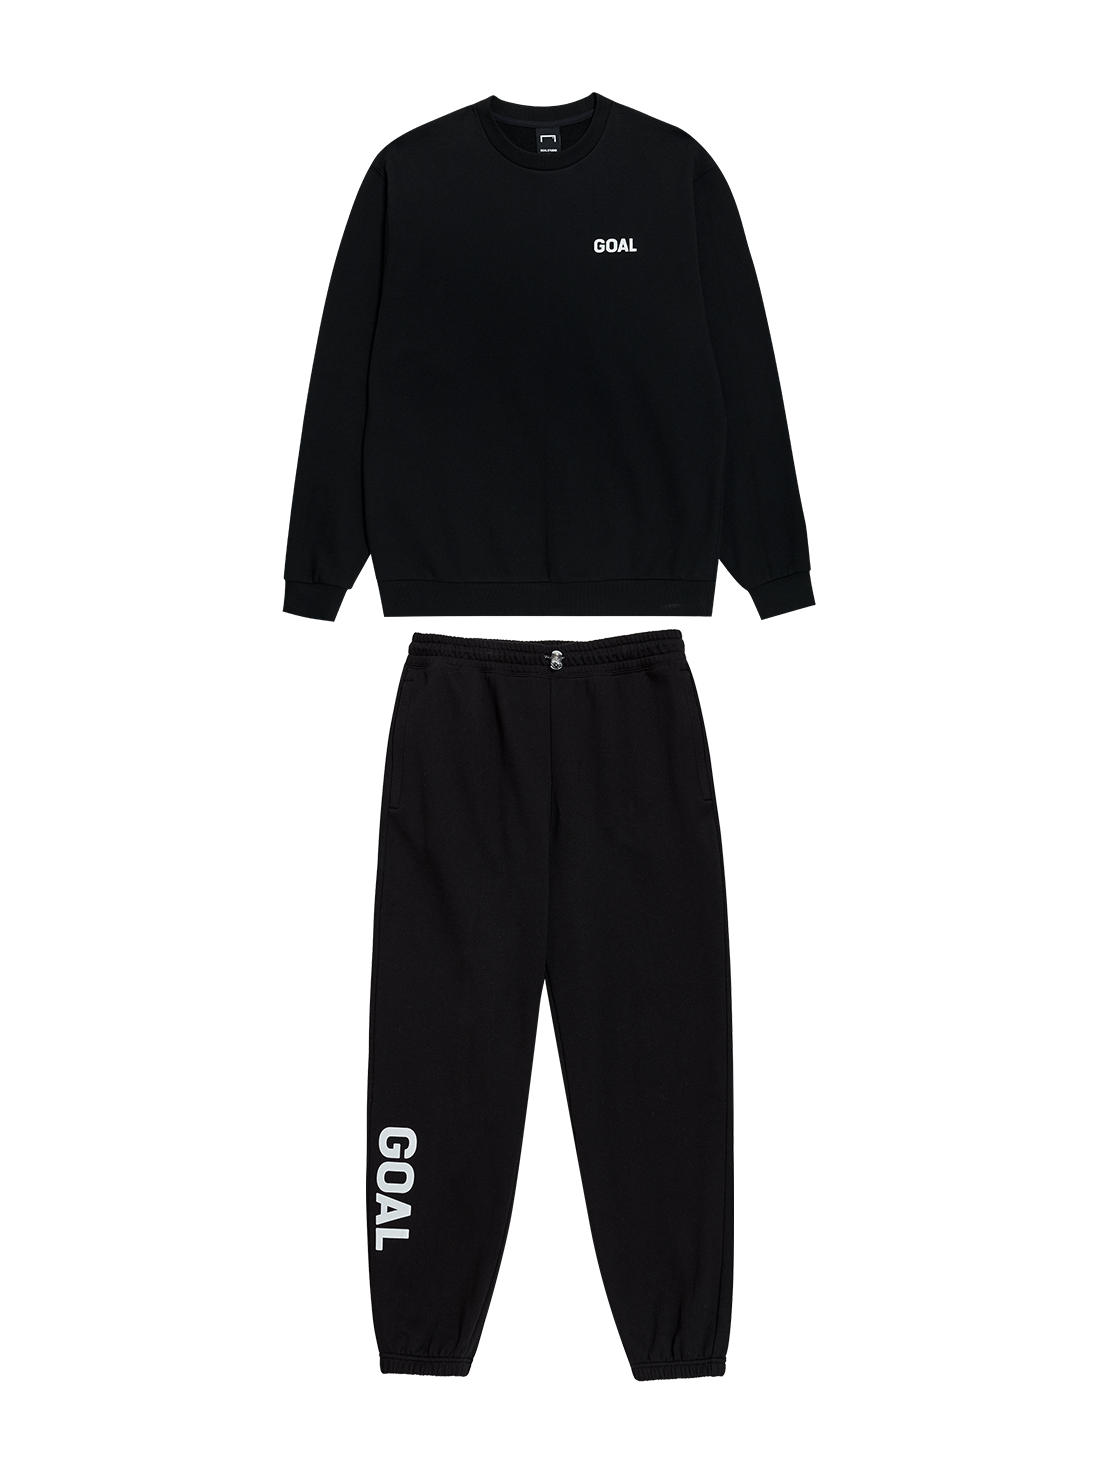 GOALSTUDIO [10% OFF] FLOCKING SWEATSHIRT & PANTS SET - BLACK